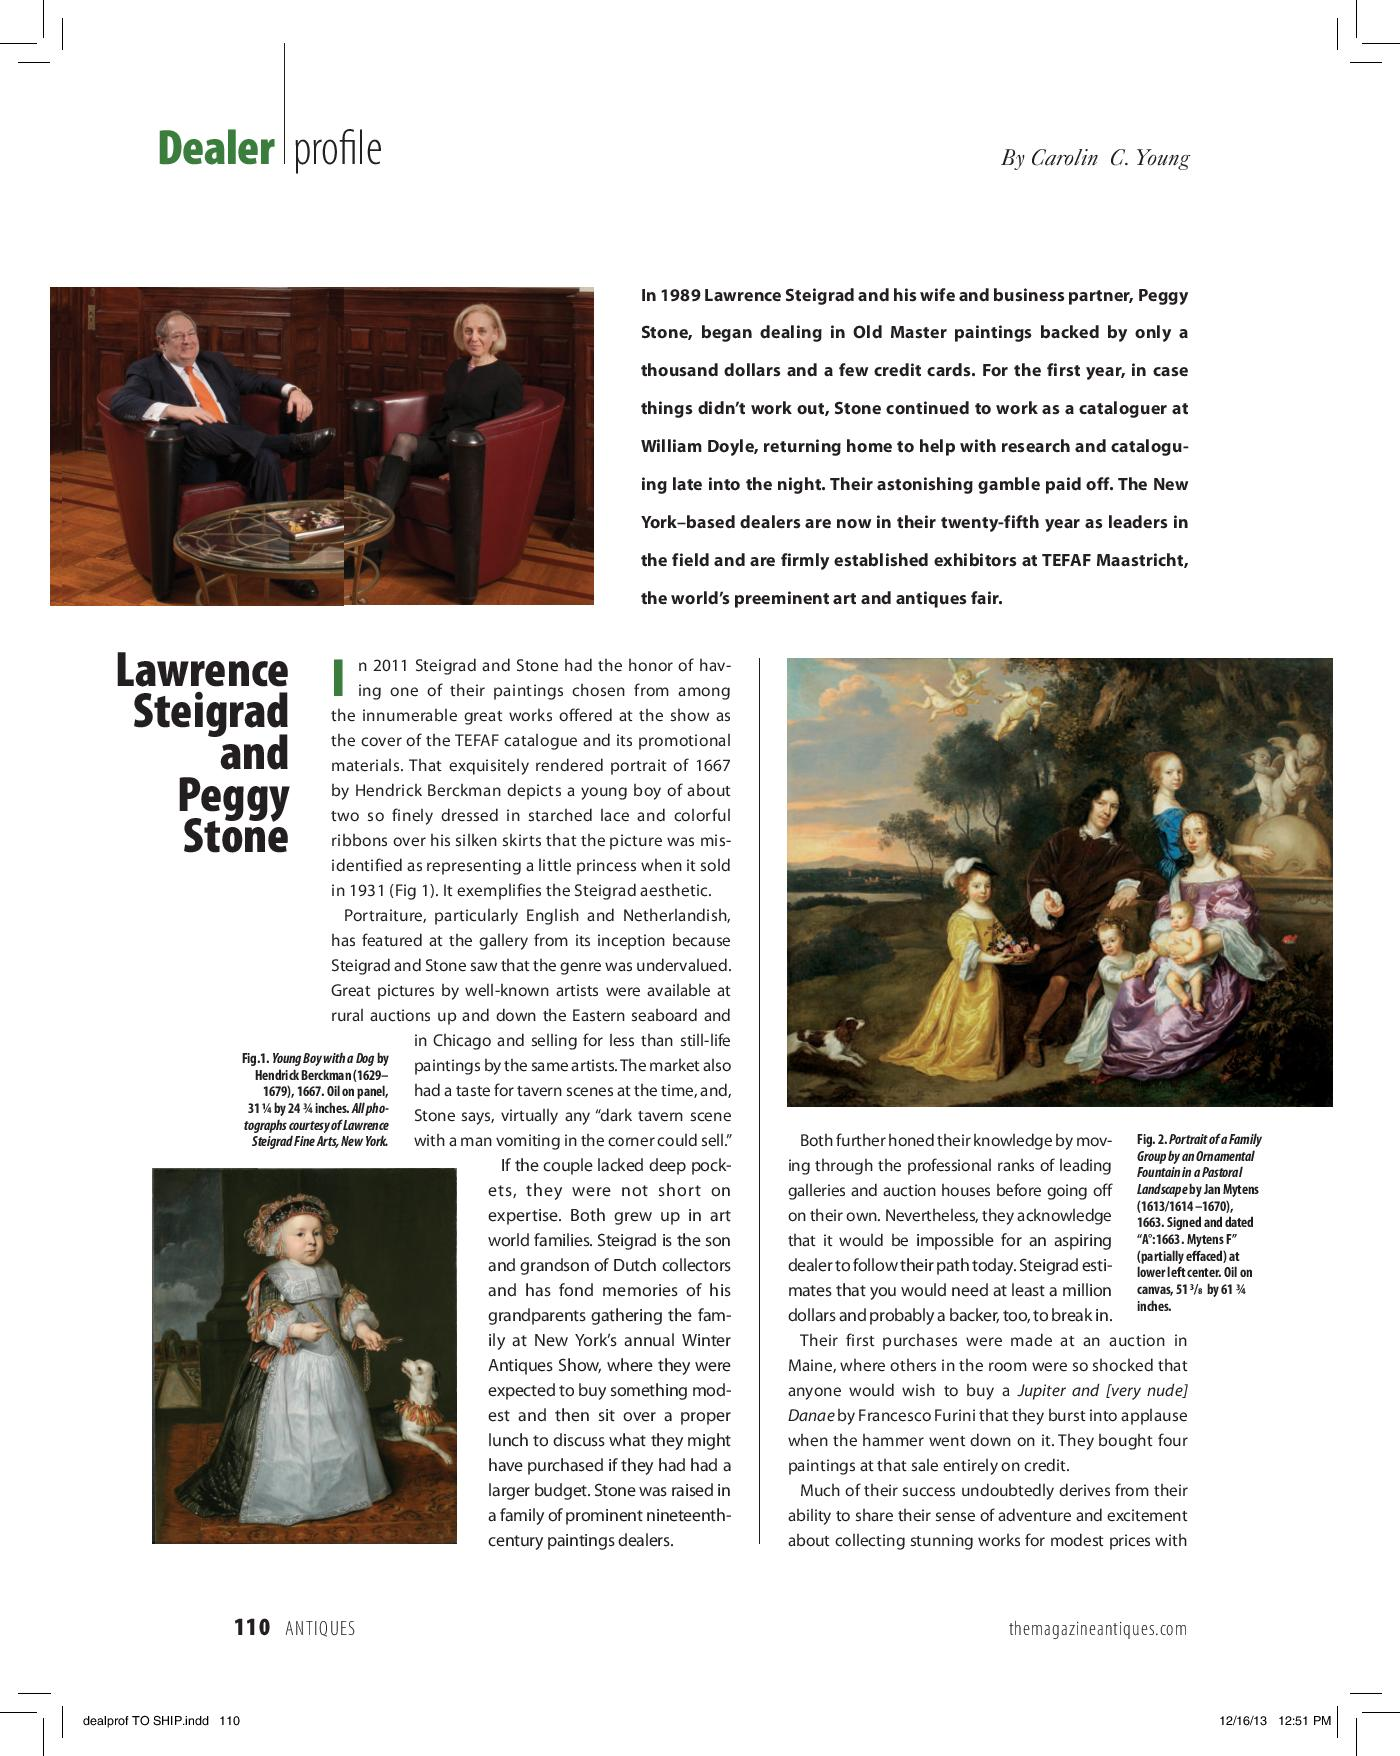 The Antiques Magazine Profile-page-001.jpg